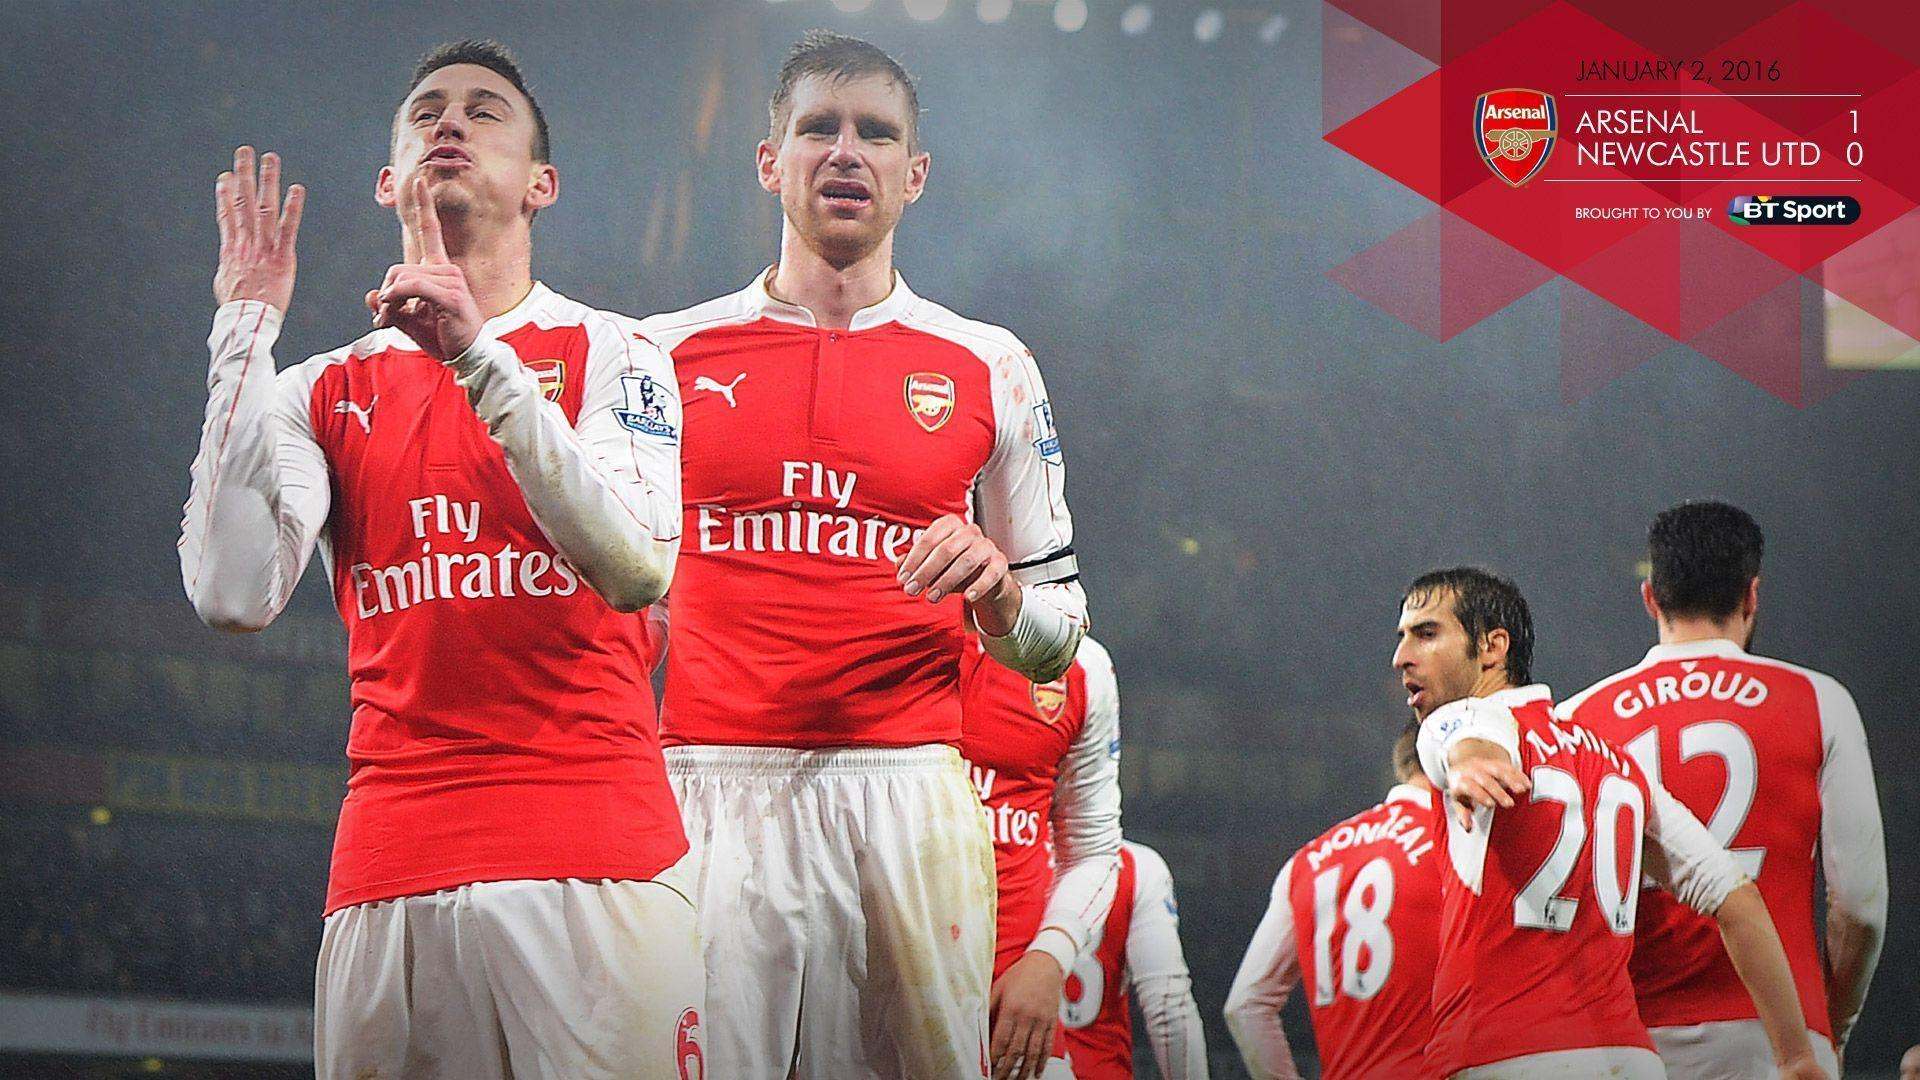 Arsenal Wallpapers 2017 1920x1080